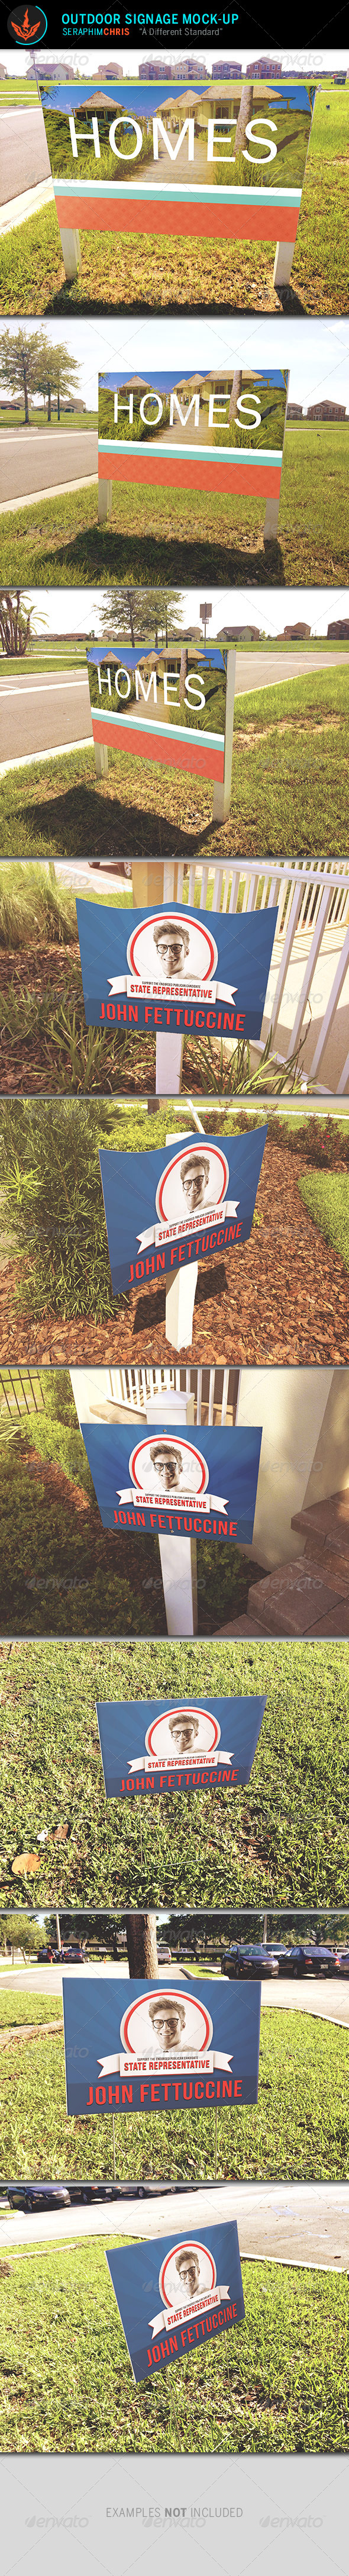 GraphicRiver Outdoor Signage Mock Up Template 8409809